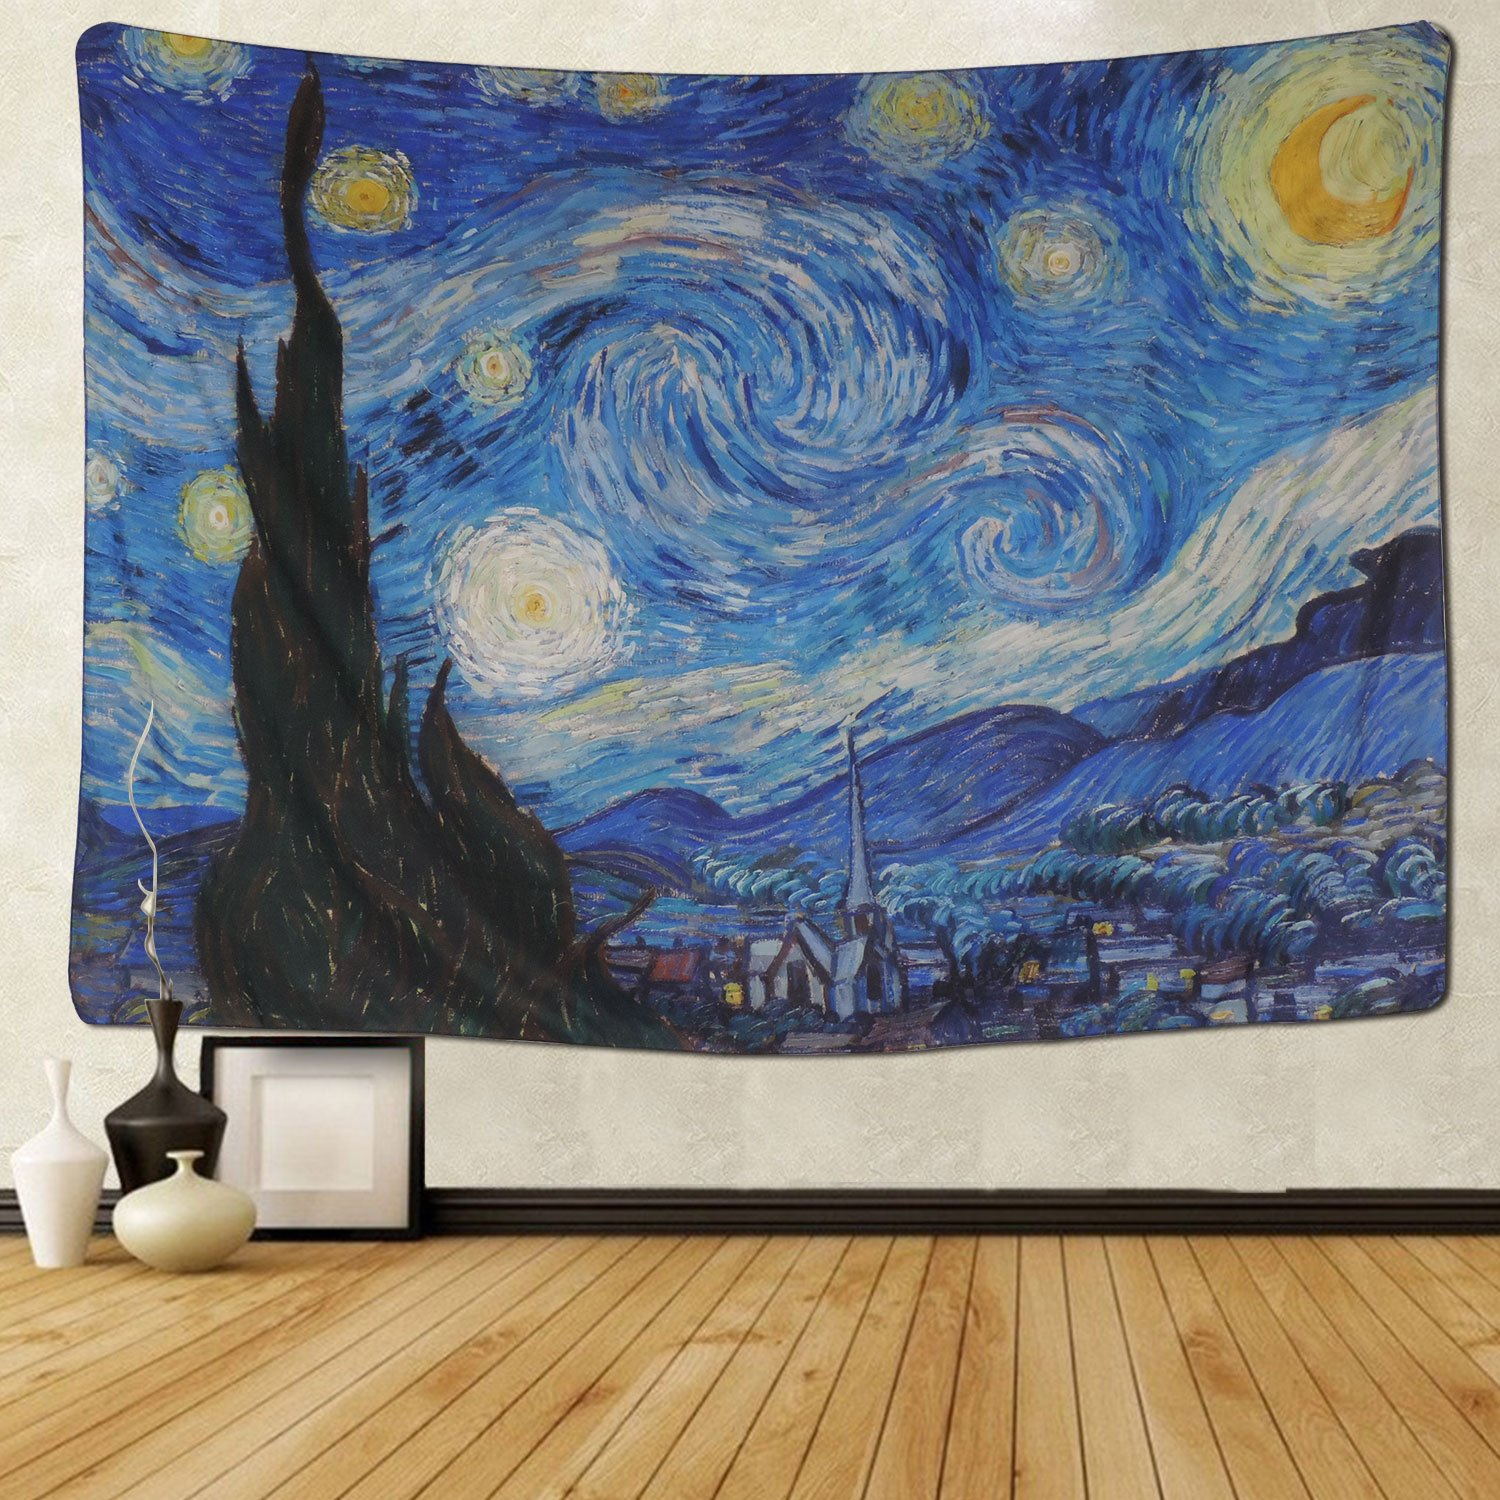 BLEUM CADE Tapestry Wall Hanging Wall Tapestry Hippie Galaxy Tapestry Starry Night Tapestry Mandala Bohemian Tapestry Living Room Bedroom Space Decor